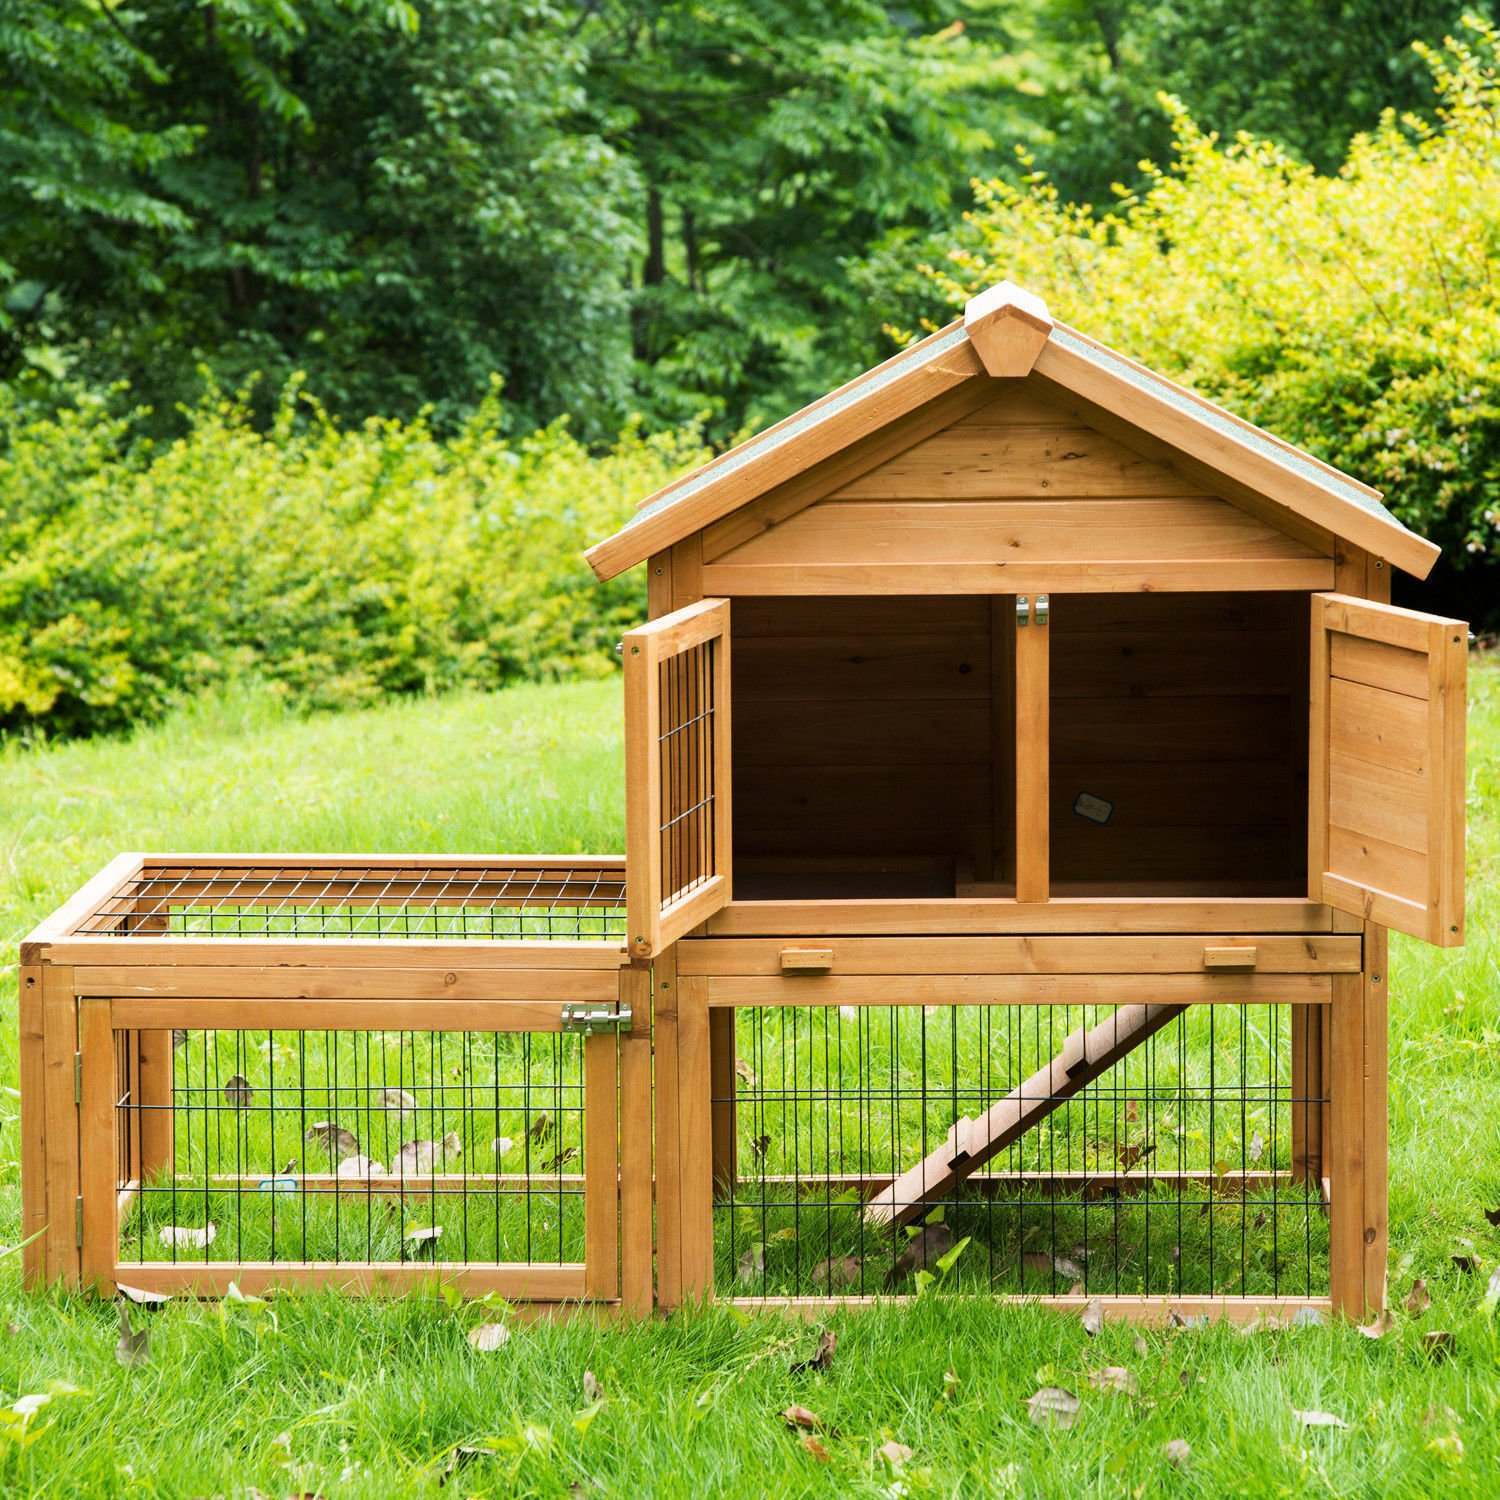 Eight24hours 53'' Wooden Chicken Coop Rabbit Hutch Small Pet House Hen Cages + FREE E-Book by Eight24hours (Image #8)